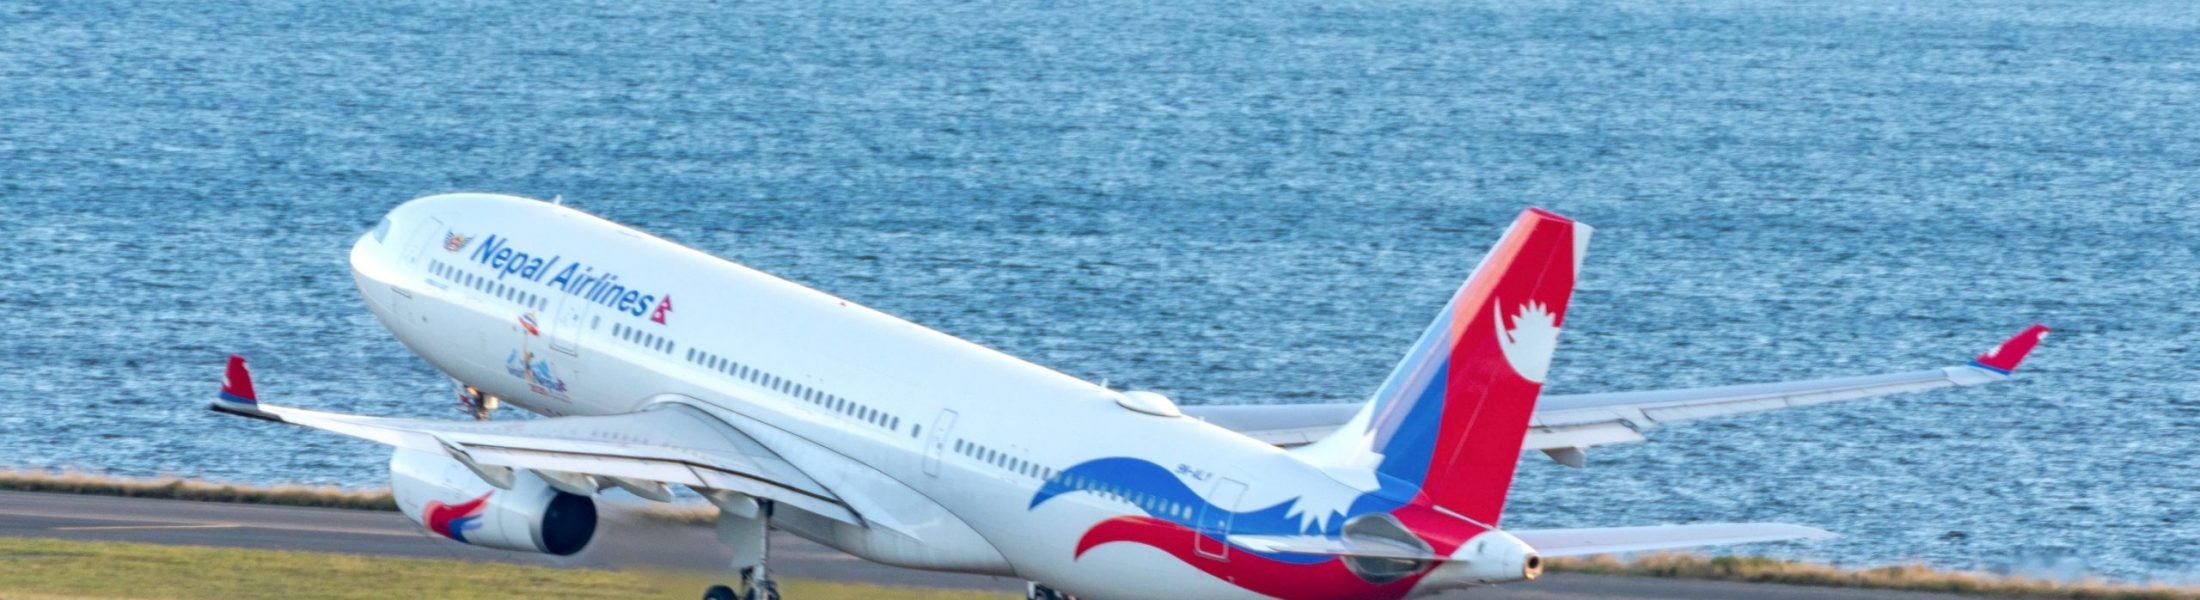 The Nepal Airlines repatriation flight from Sydney to Kathmandu June 23